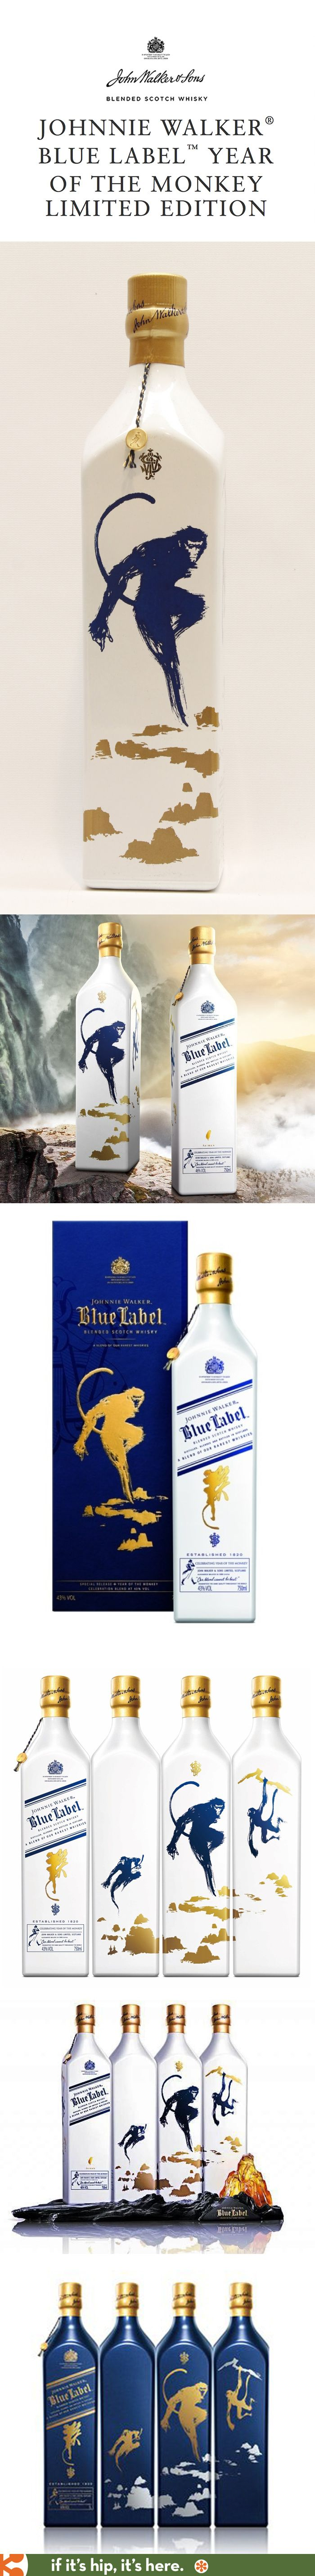 Johnnie Walker Blue Label Year Of The Monkey Limited Edition Bottle variations for Asia and US. One bottle, four different beautiful sides.